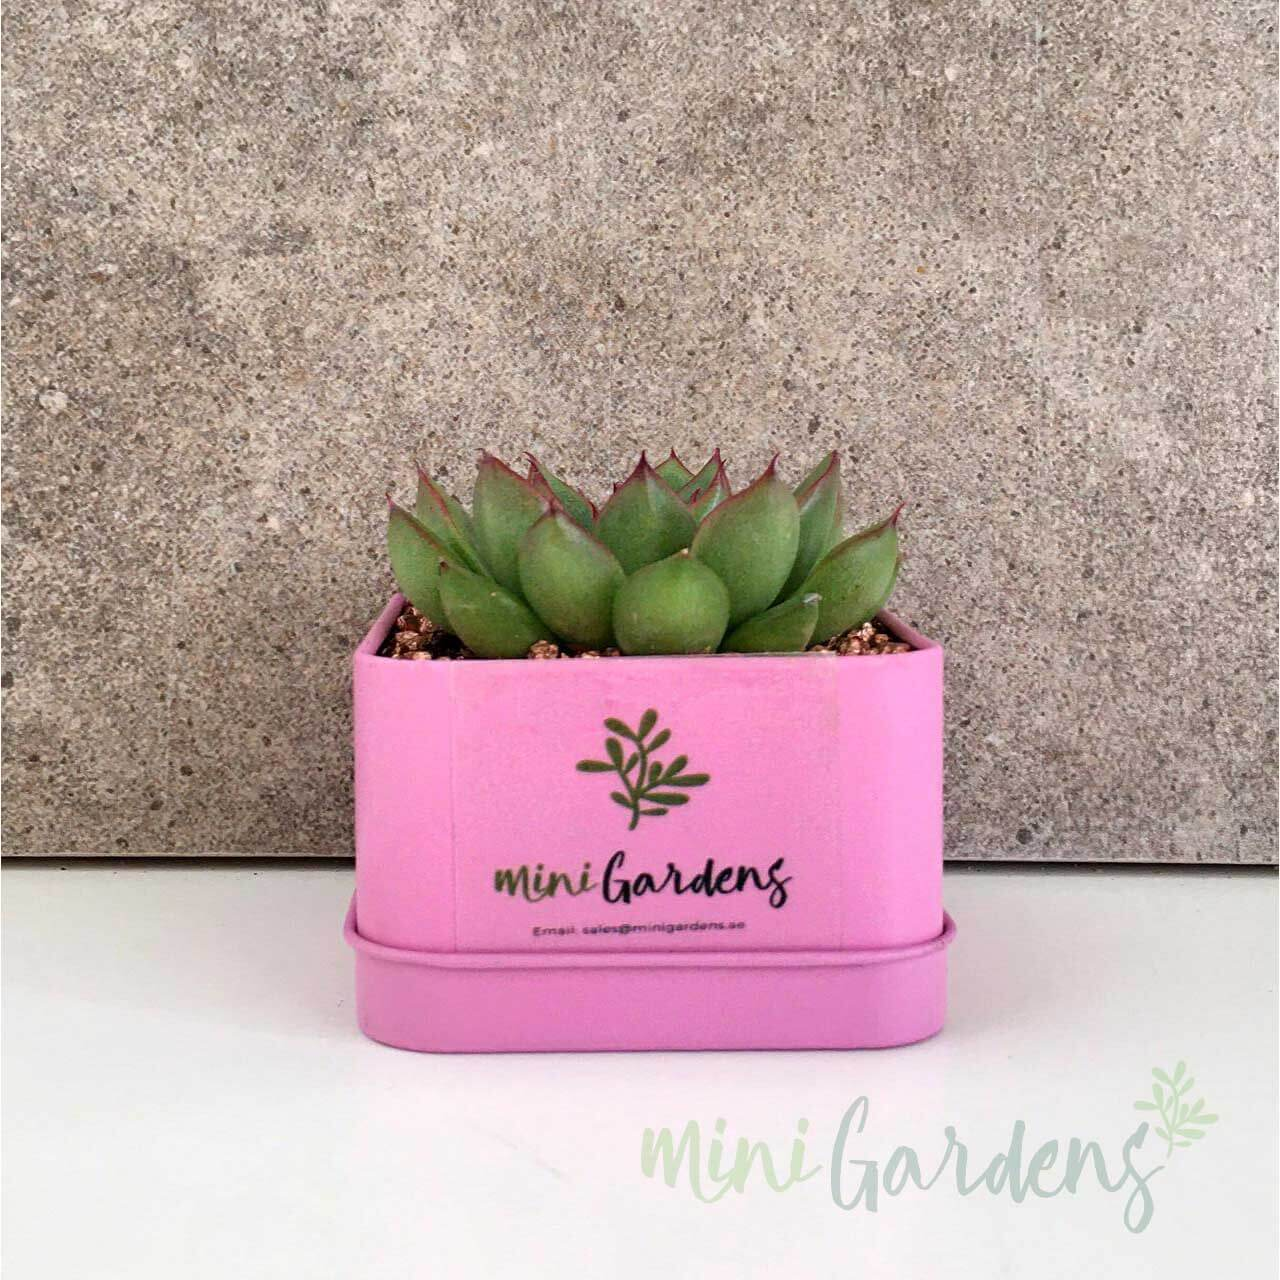 MiniGardens-Corporate-Gifts-online-Floral-Succulents-Dubai-Sharjah-Abu-Dhabi-UAE